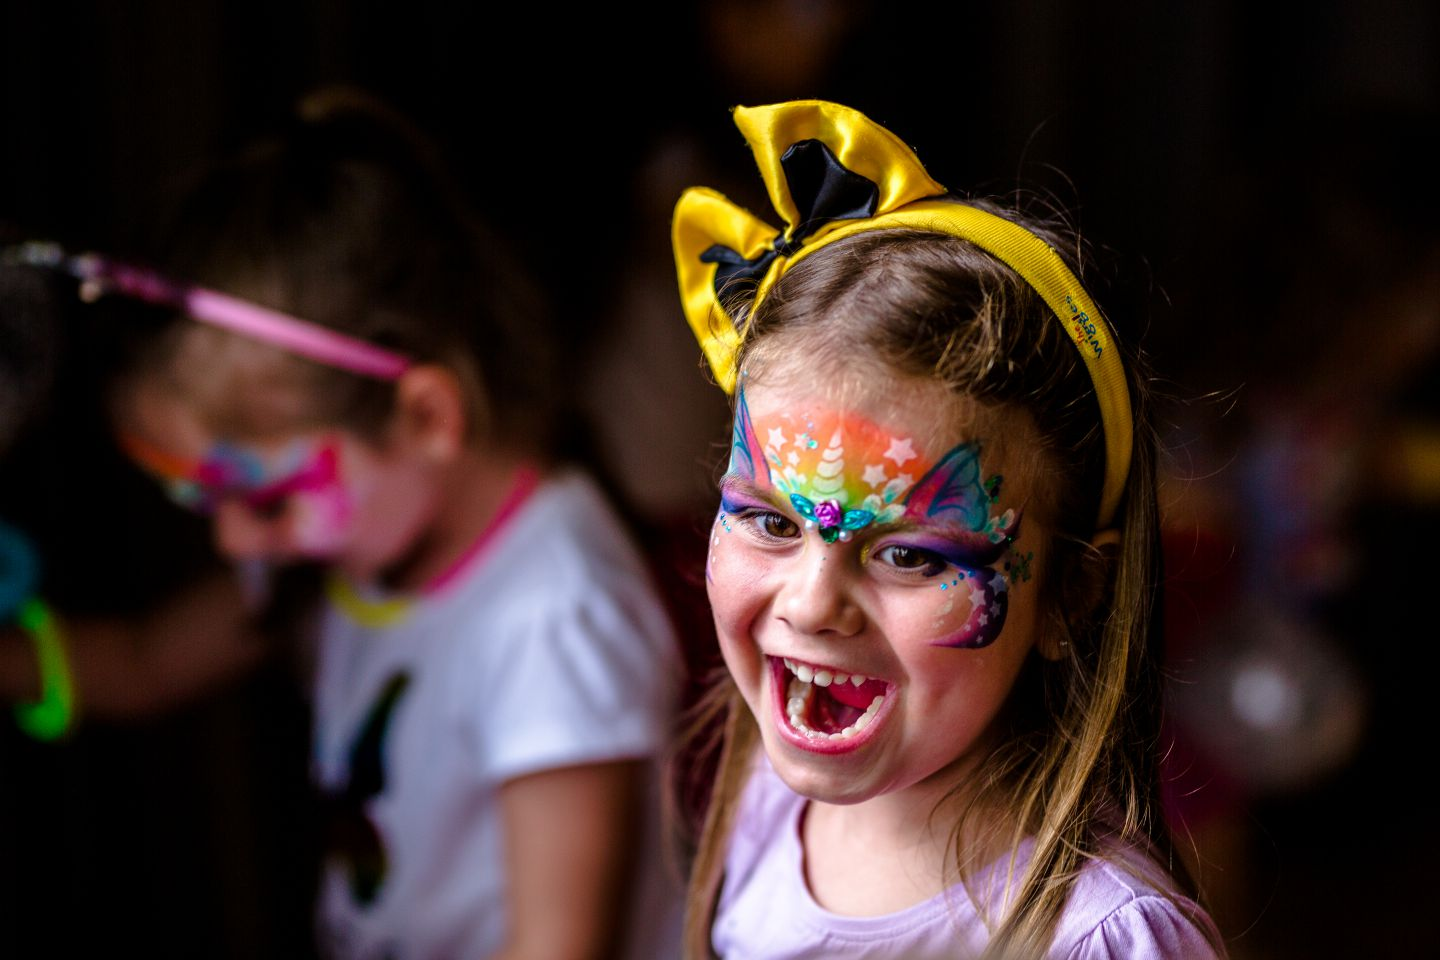 A girl wearing a unicorn face mask laughing at a children's party.